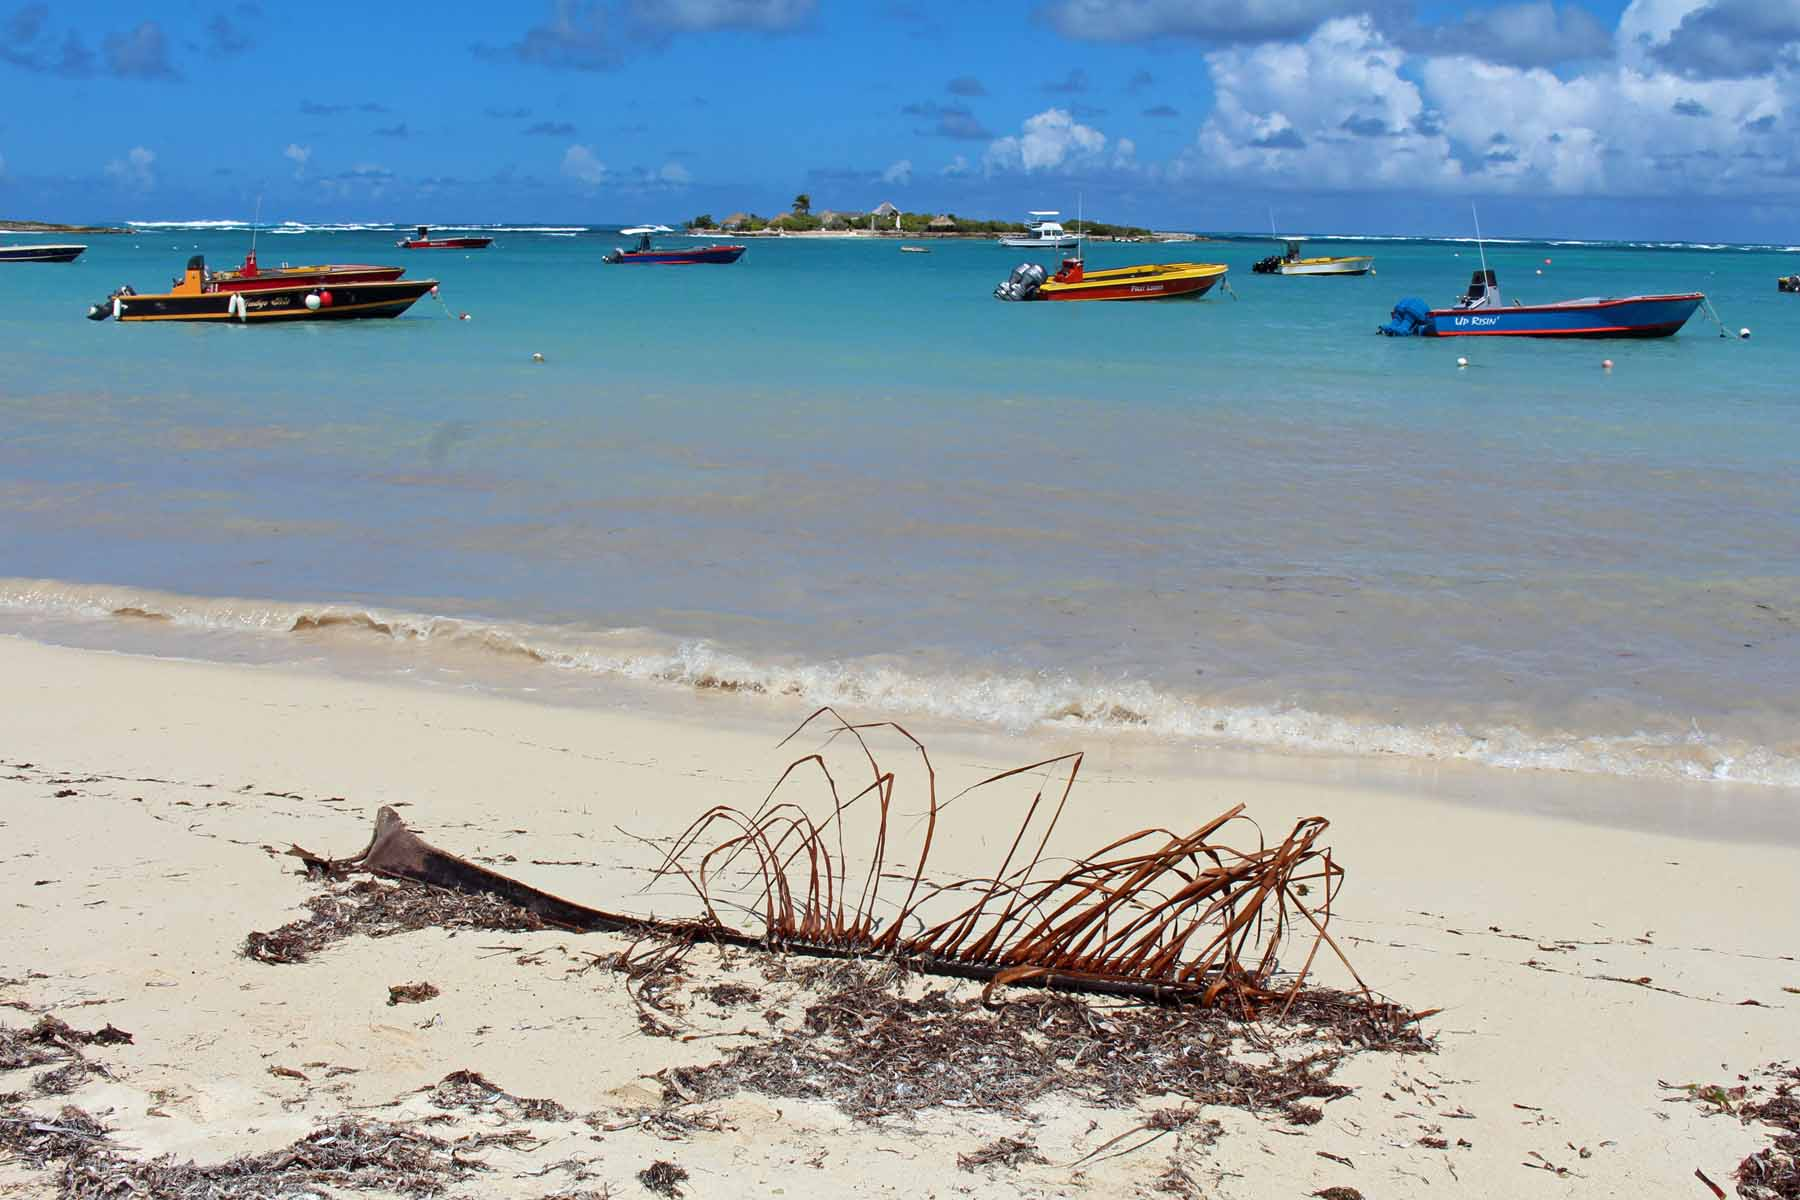 The Island Harbour beach on Anguilla island